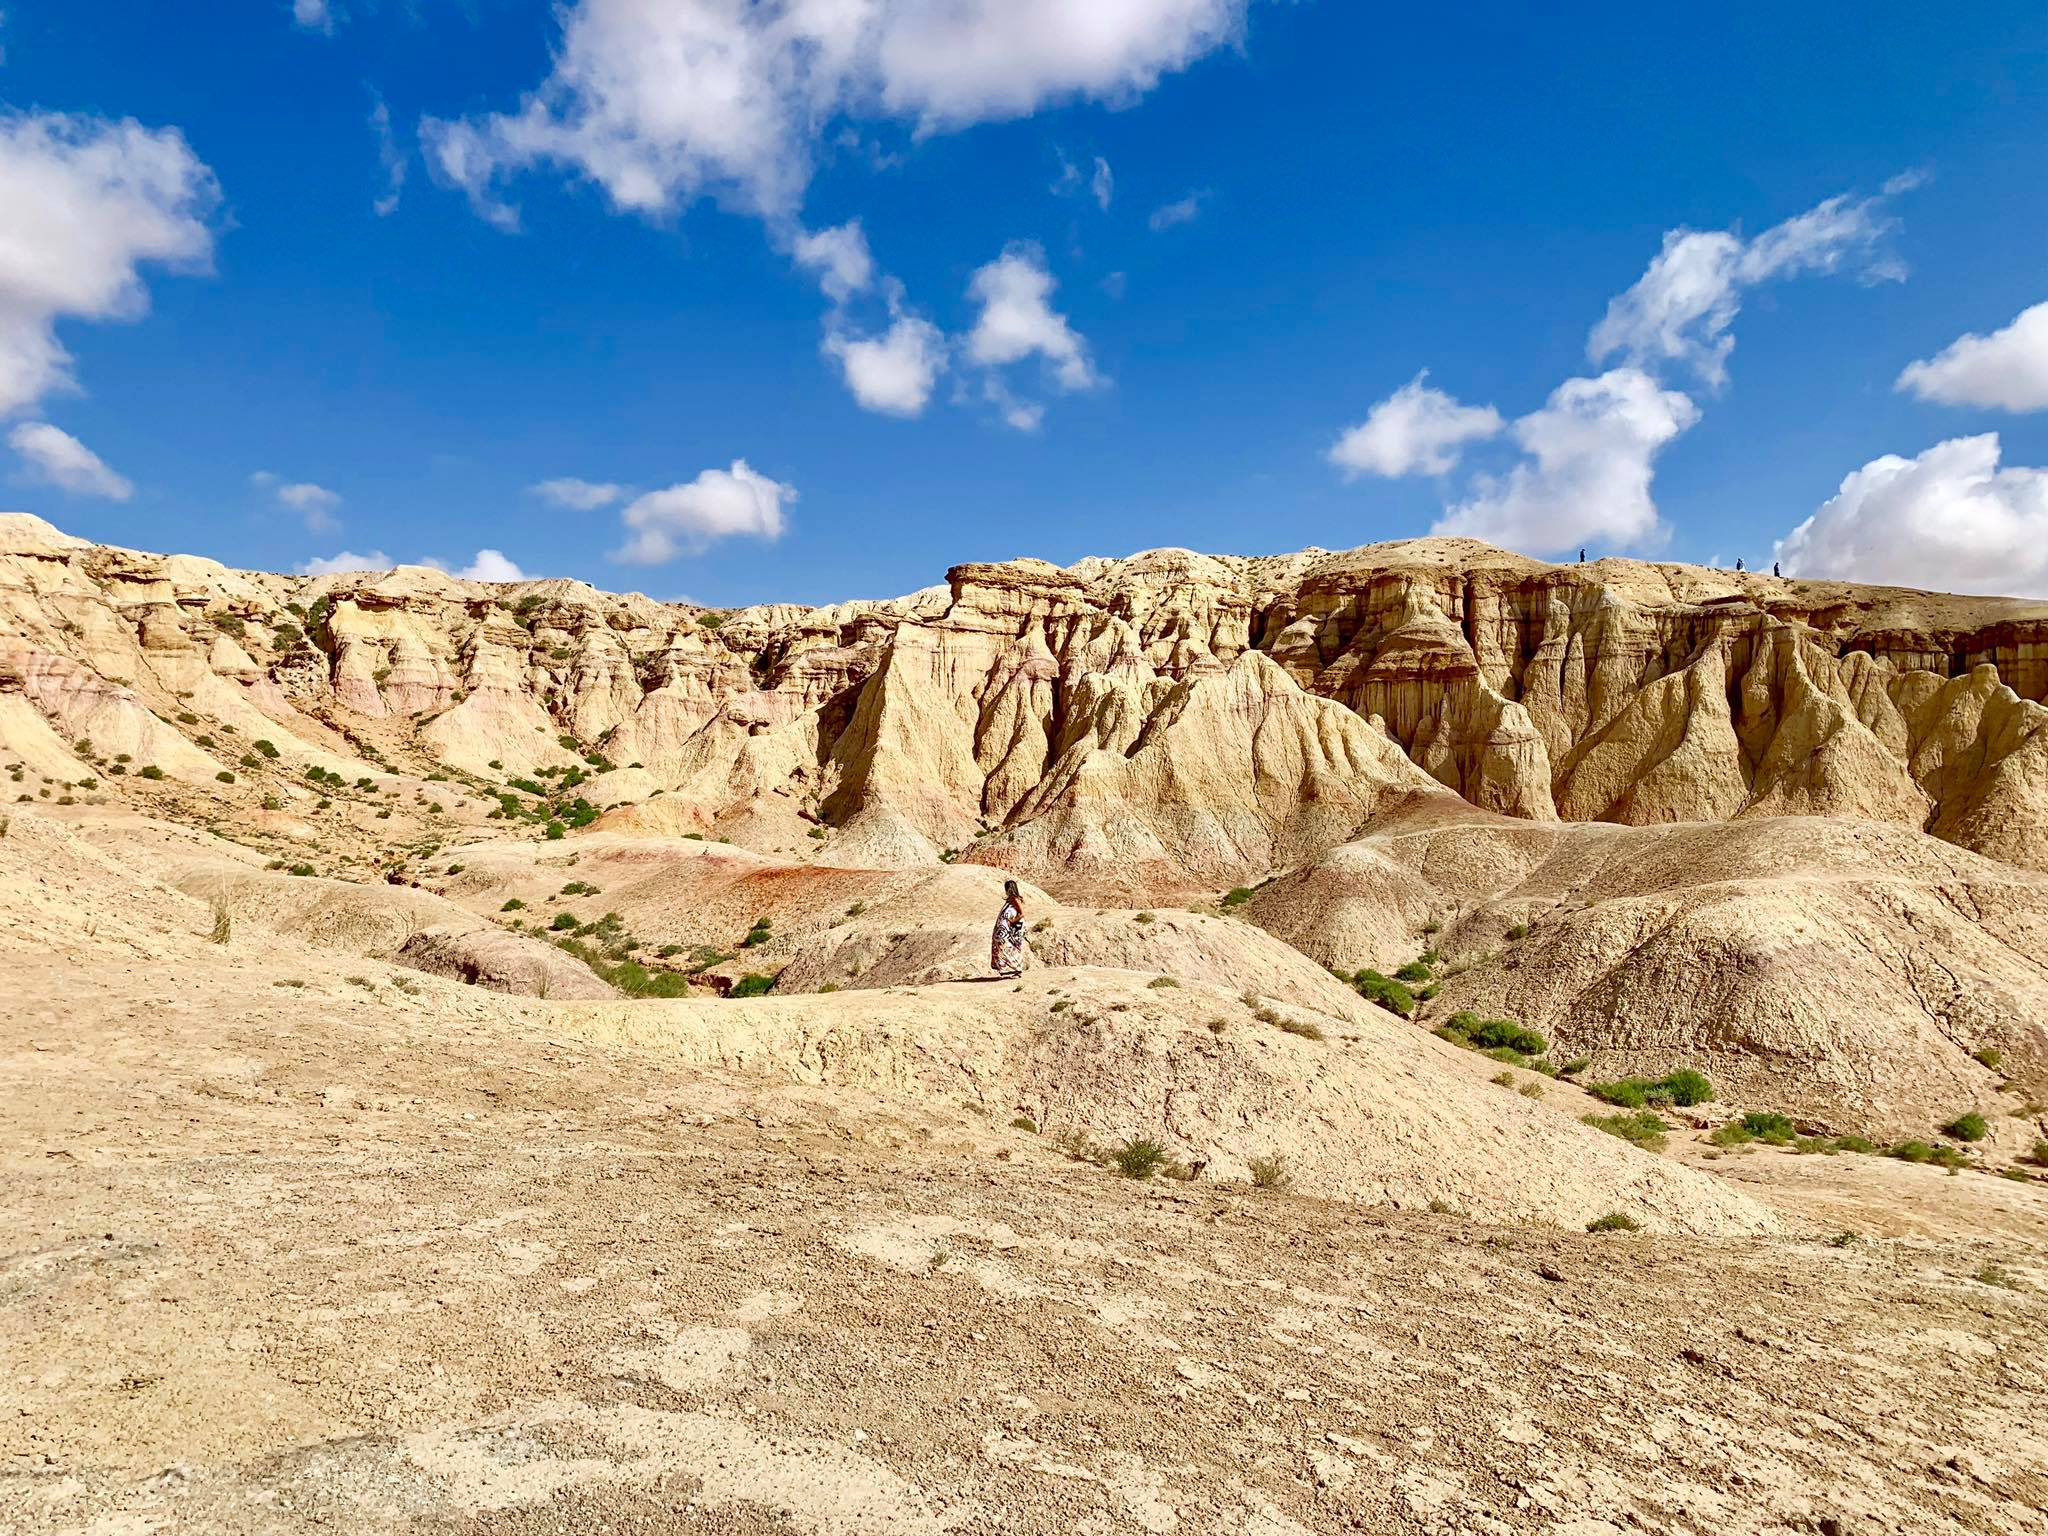 Kach Solo Travels in 2019 Gobi desert with Vast Steppe Mongolia!16.jpg